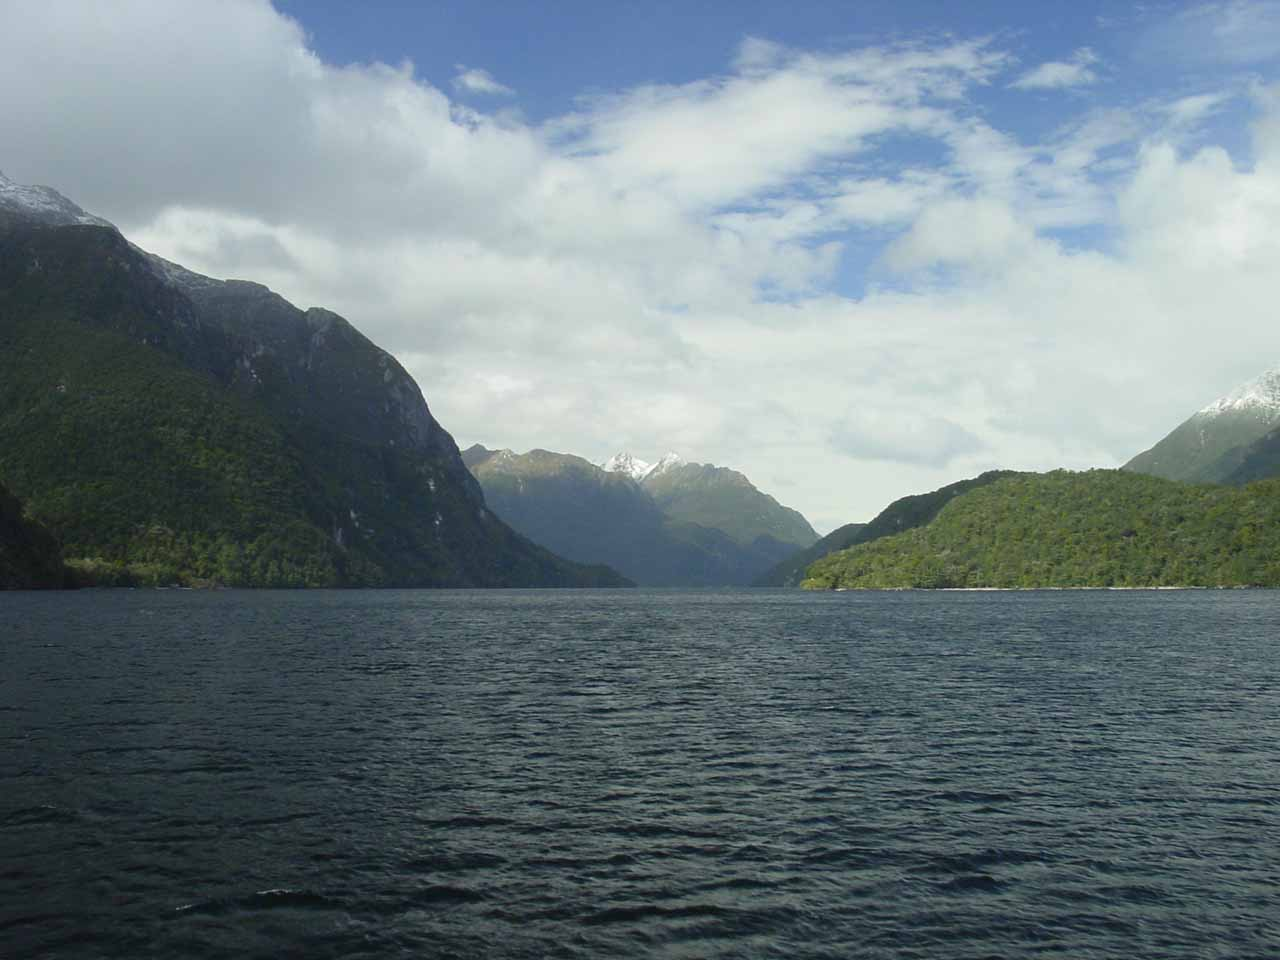 Cruising back across Lake Manapouri as the weather continued to improve